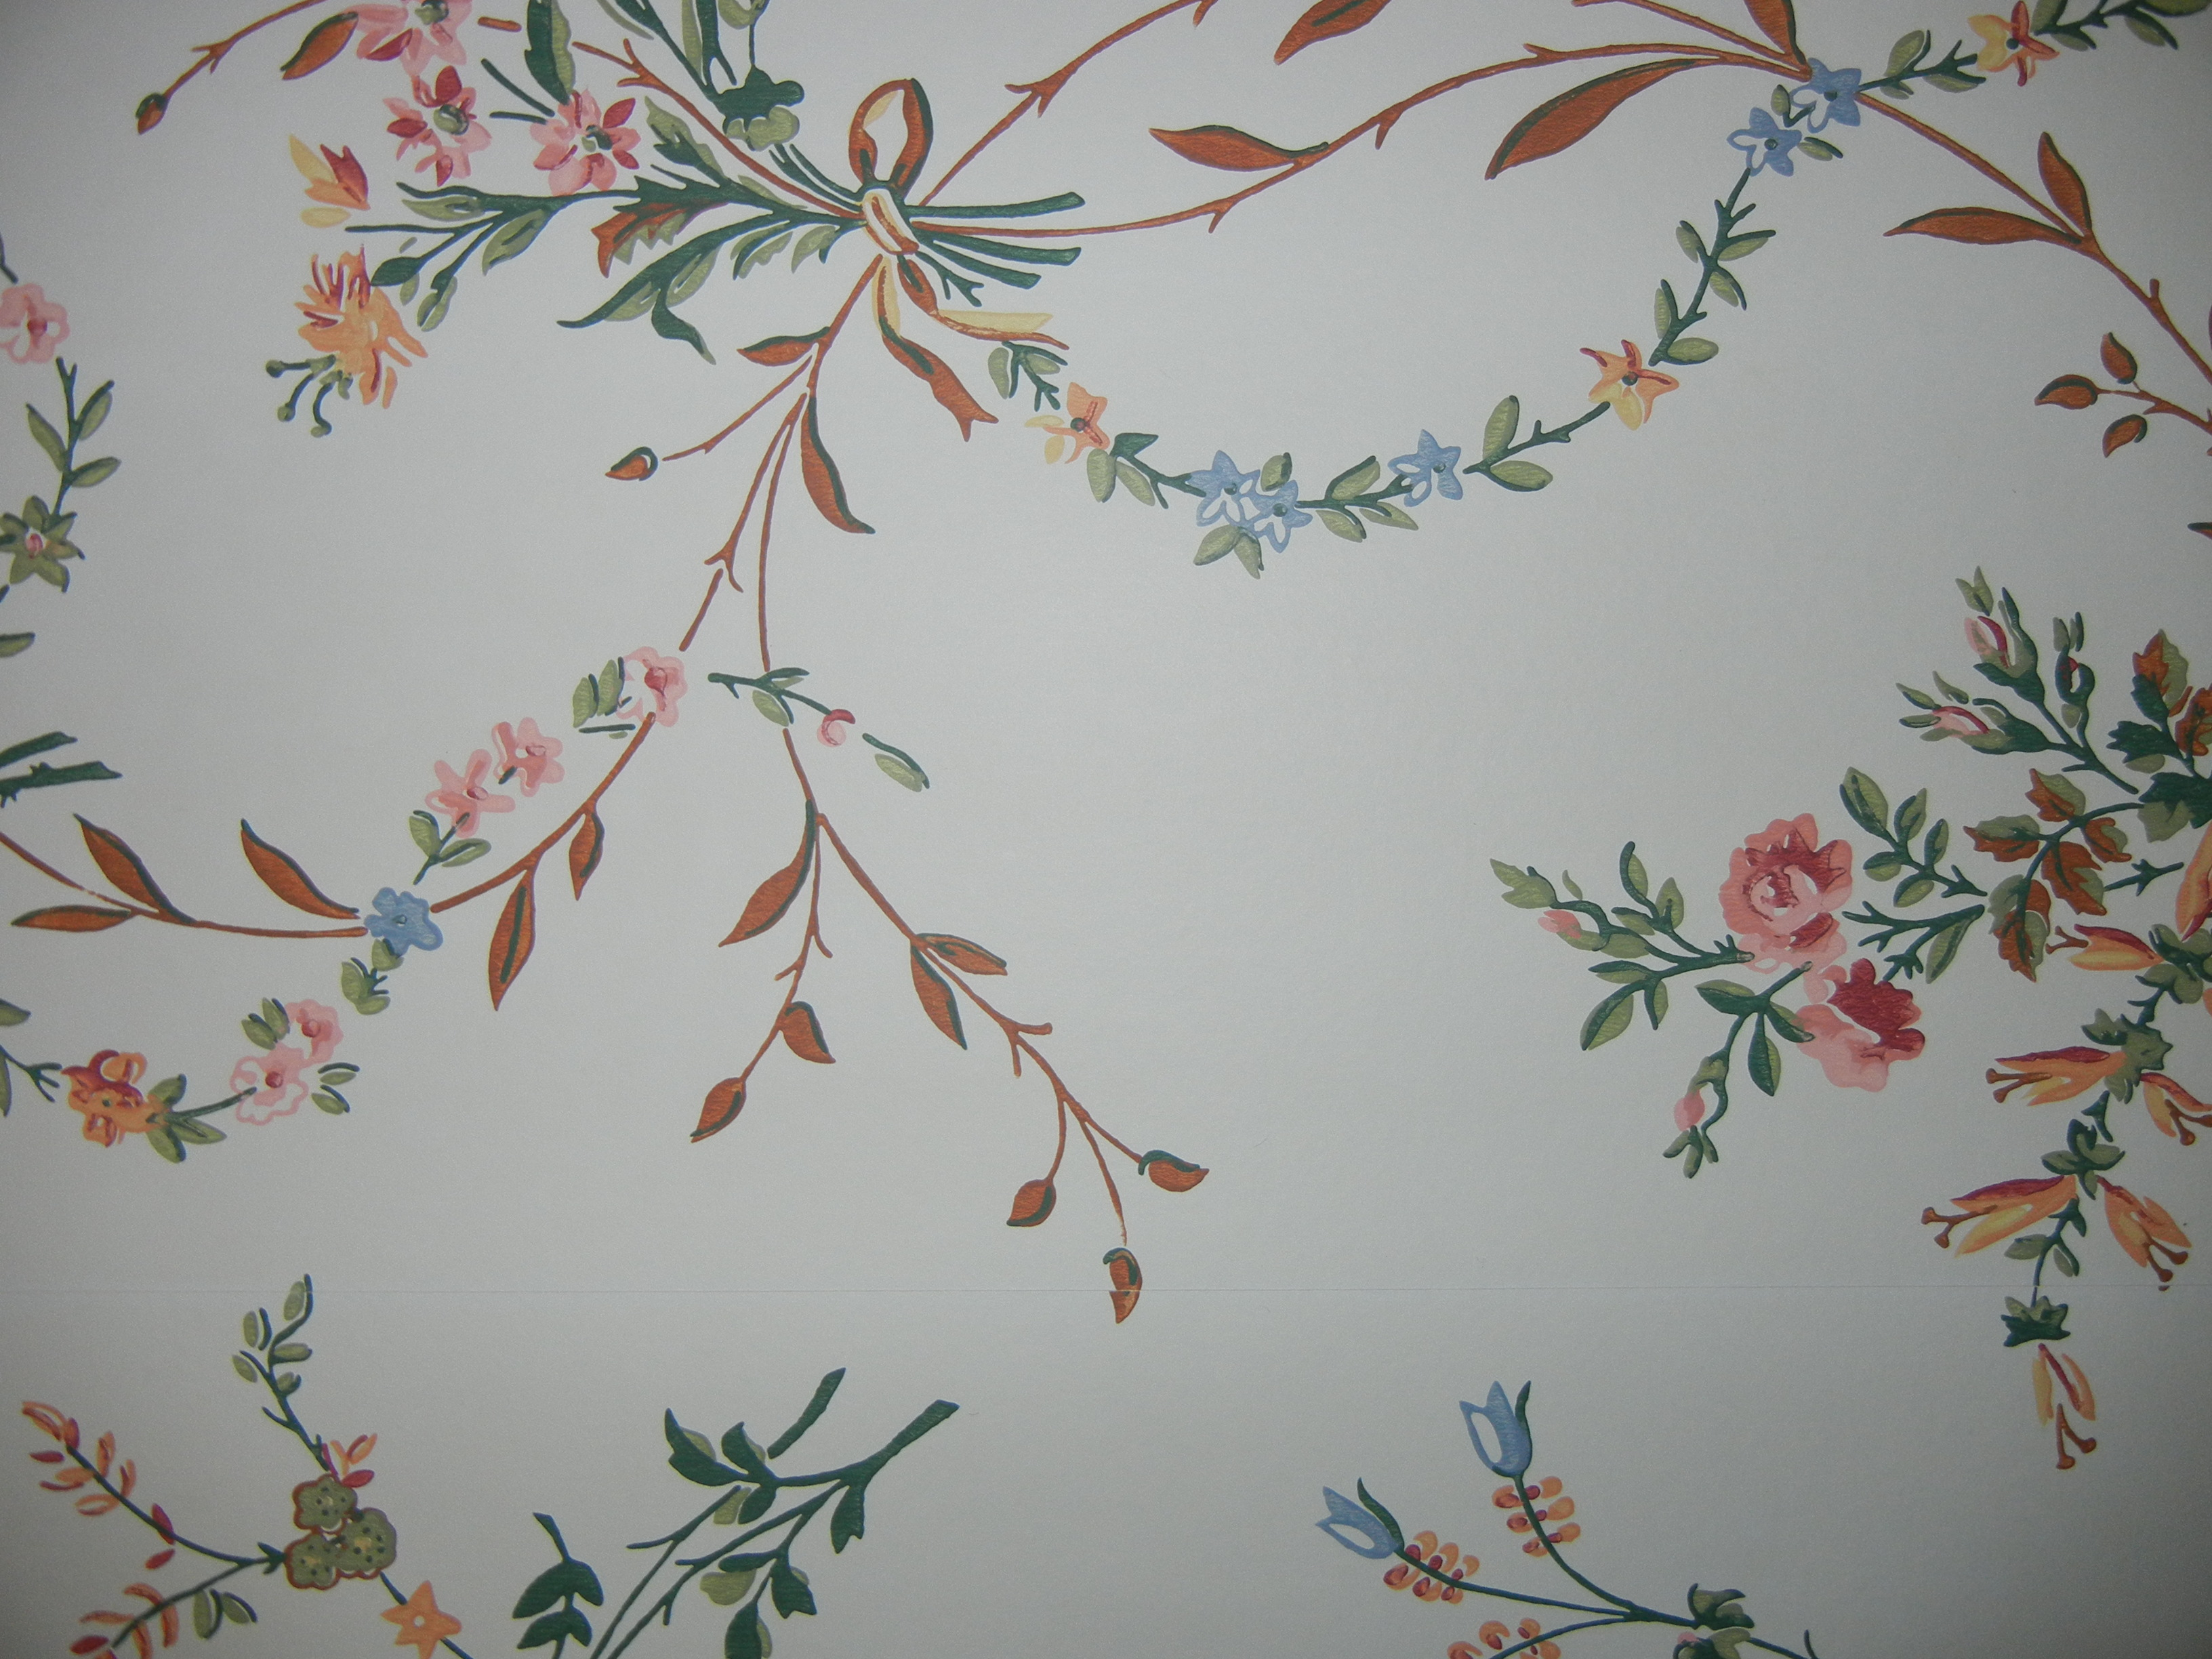 Christopher Dresser Wallpaper 1876 New York Public Library Digital 3264x2448